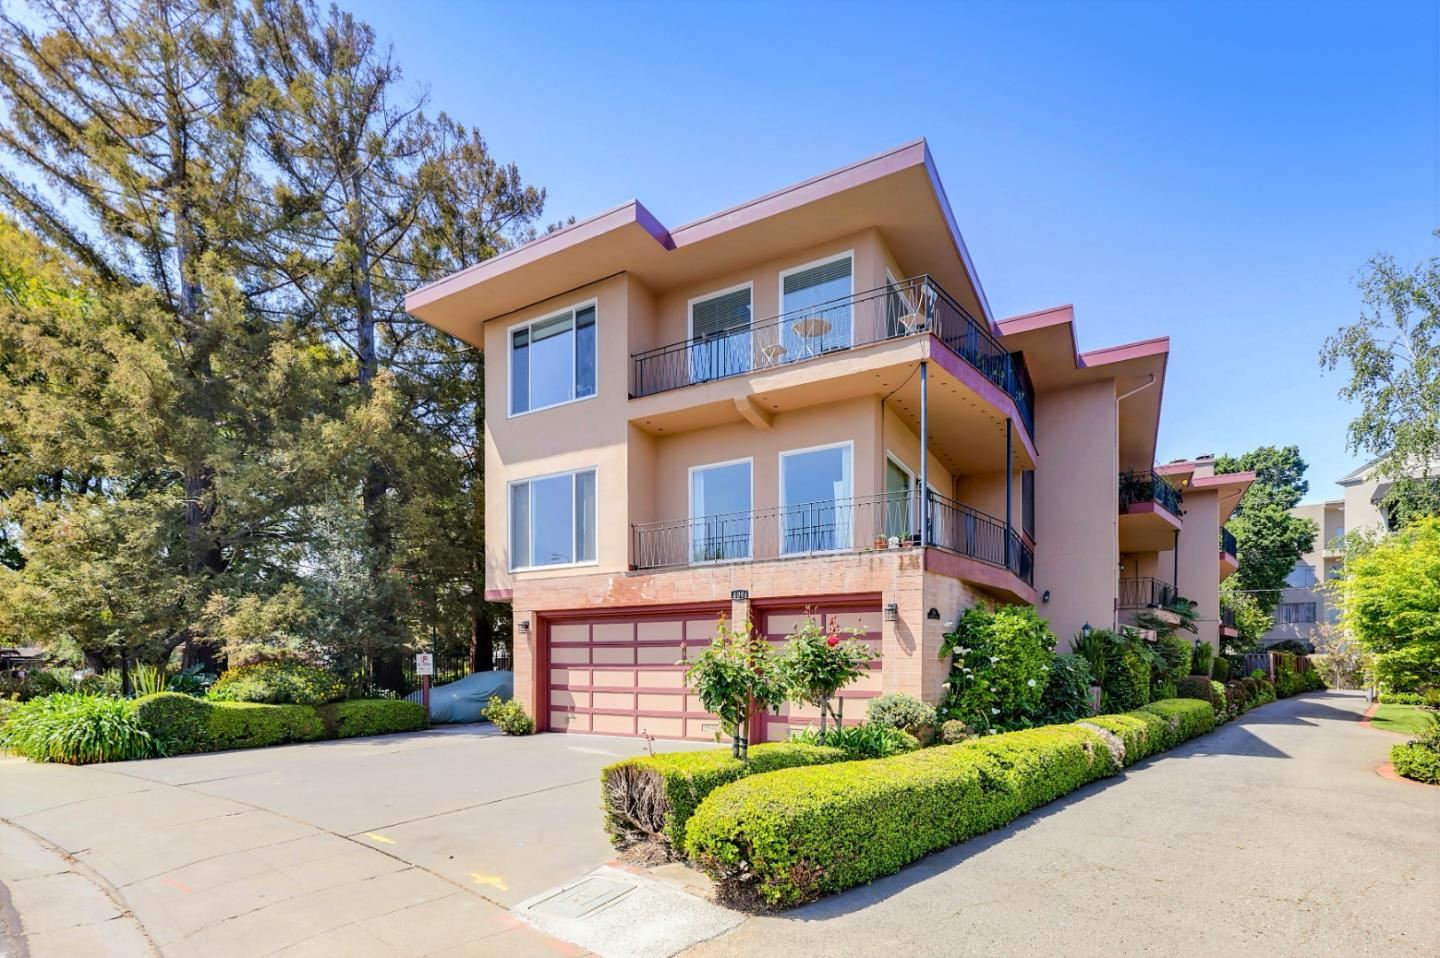 146 Dartmouth Road, San Mateo, CA 94402 - #: ML81841142